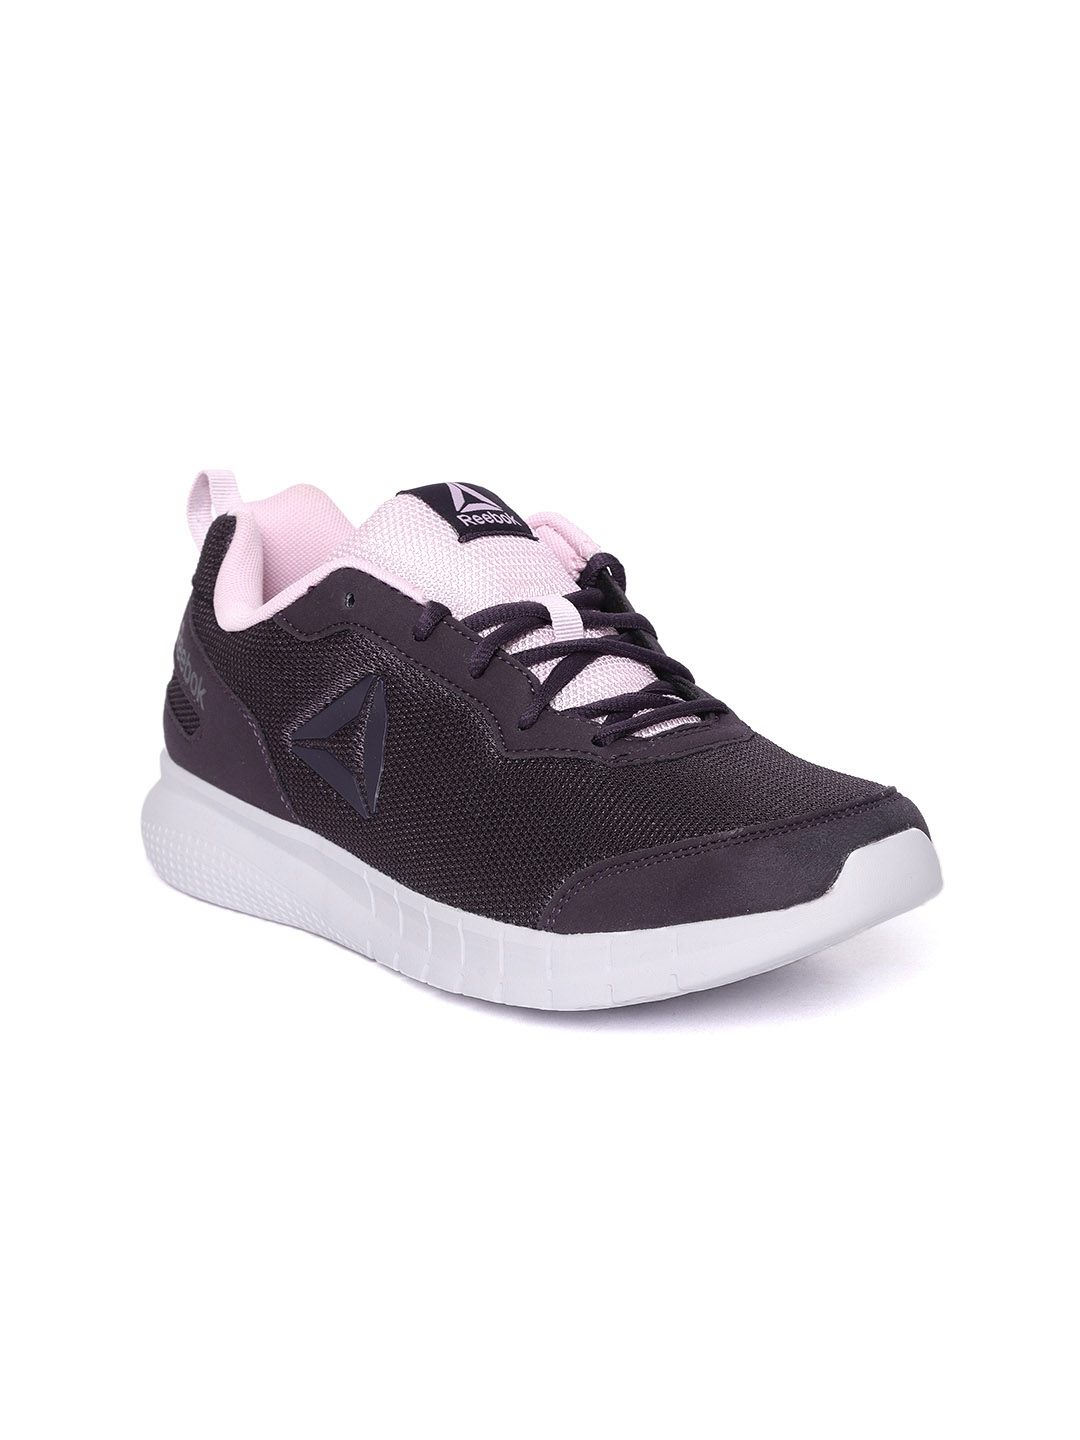 Buy Reebok Women Black AD SWIFTWAY RUN Running Shoes - Sports Shoes ... 6c714a875